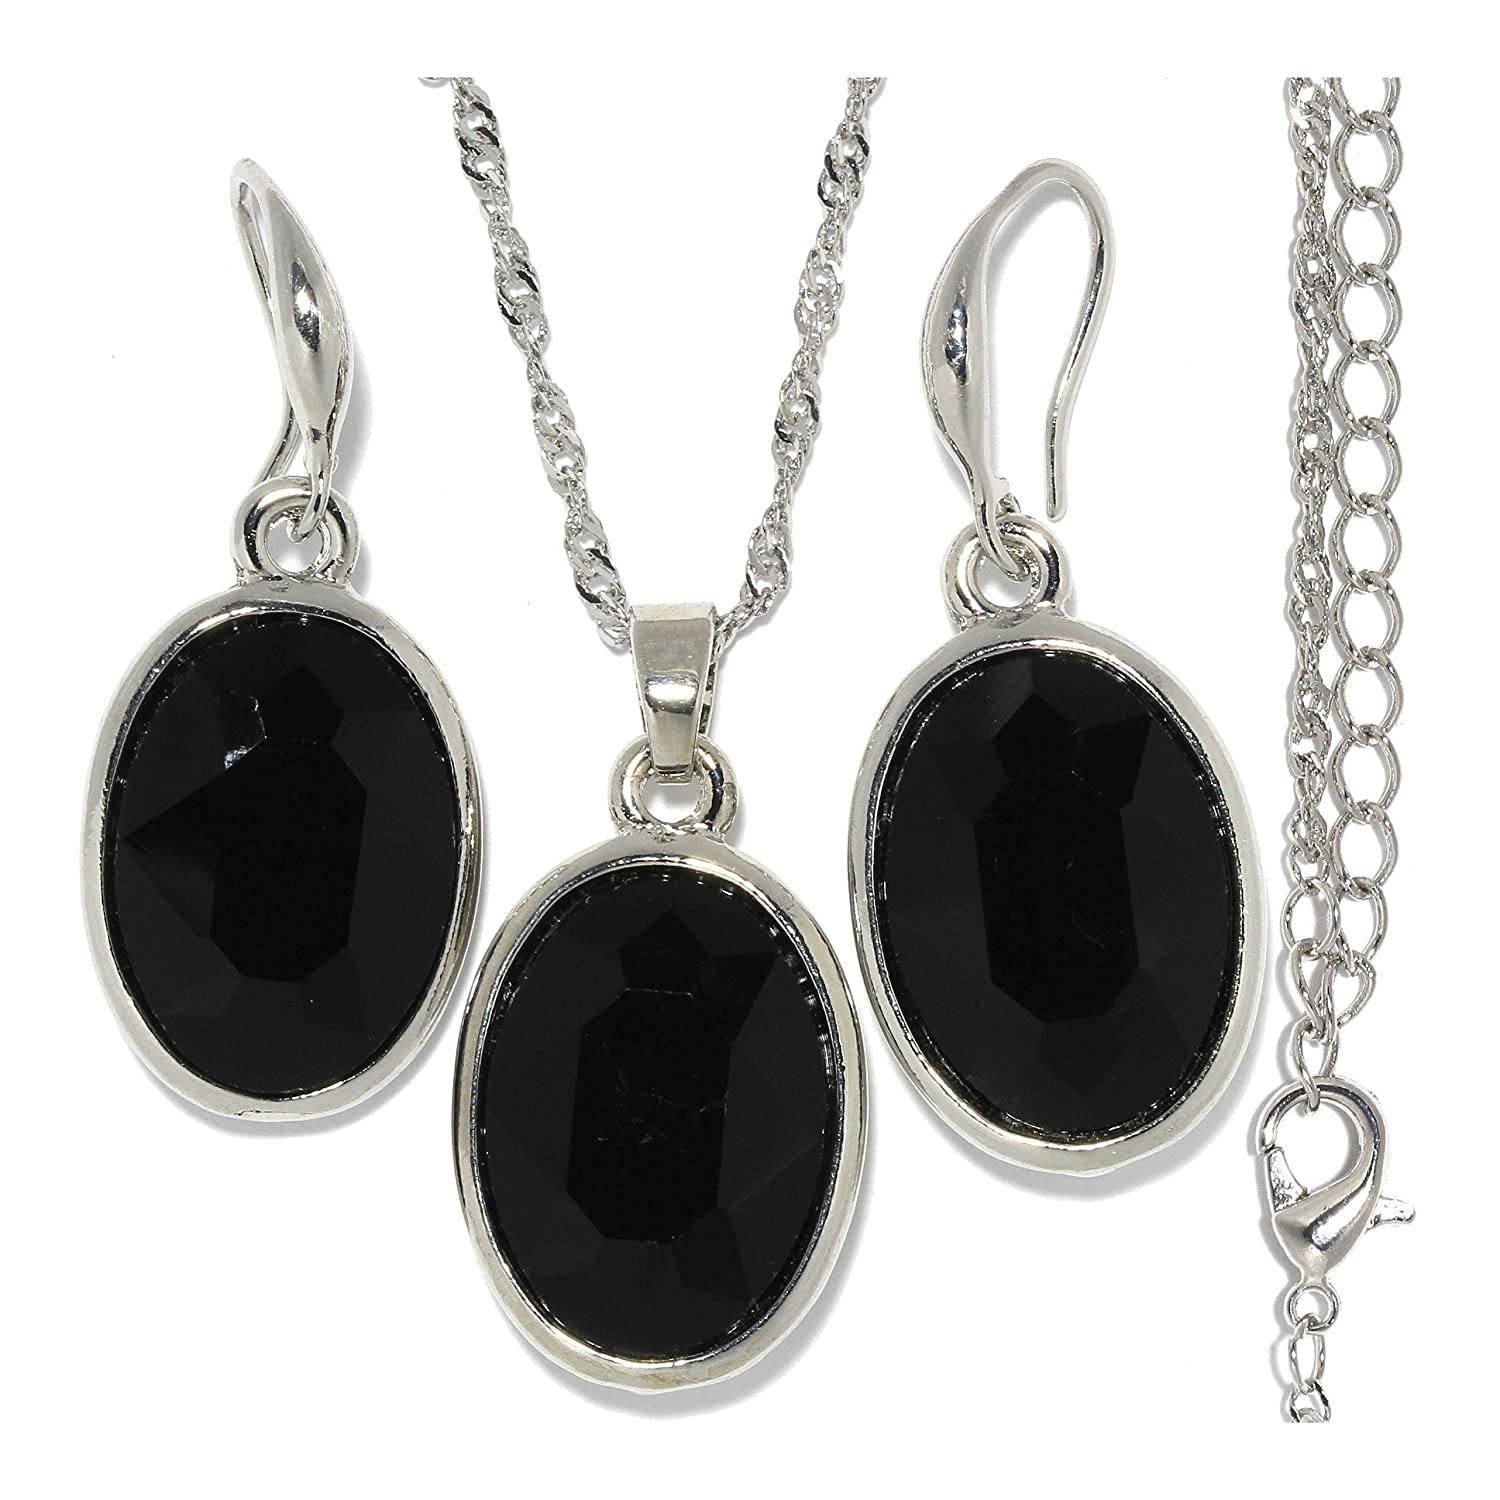 """18"""" Necklace Pendant Earrings Set Oval Gem Black Crystal Cut Silver Tone Alloy AnsonsImages"""